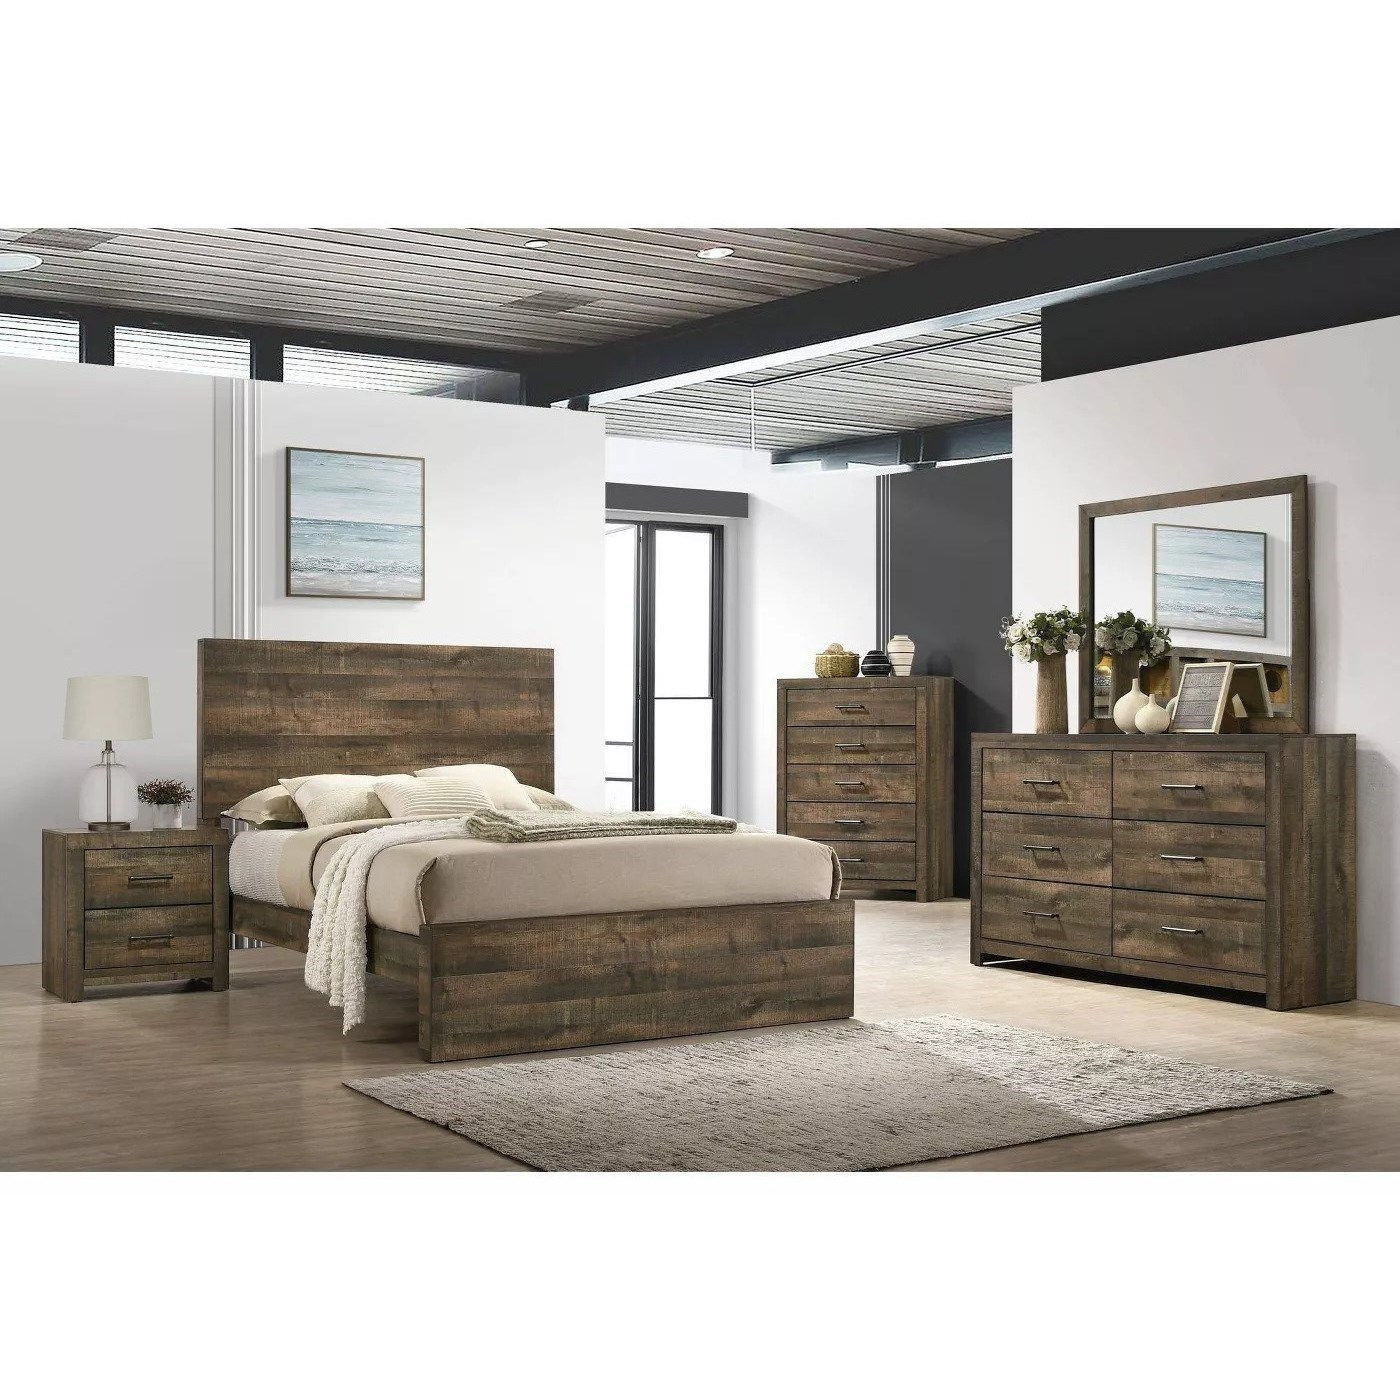 Bailey King Bedroom Group by Elements International at Goffena Furniture & Mattress Center